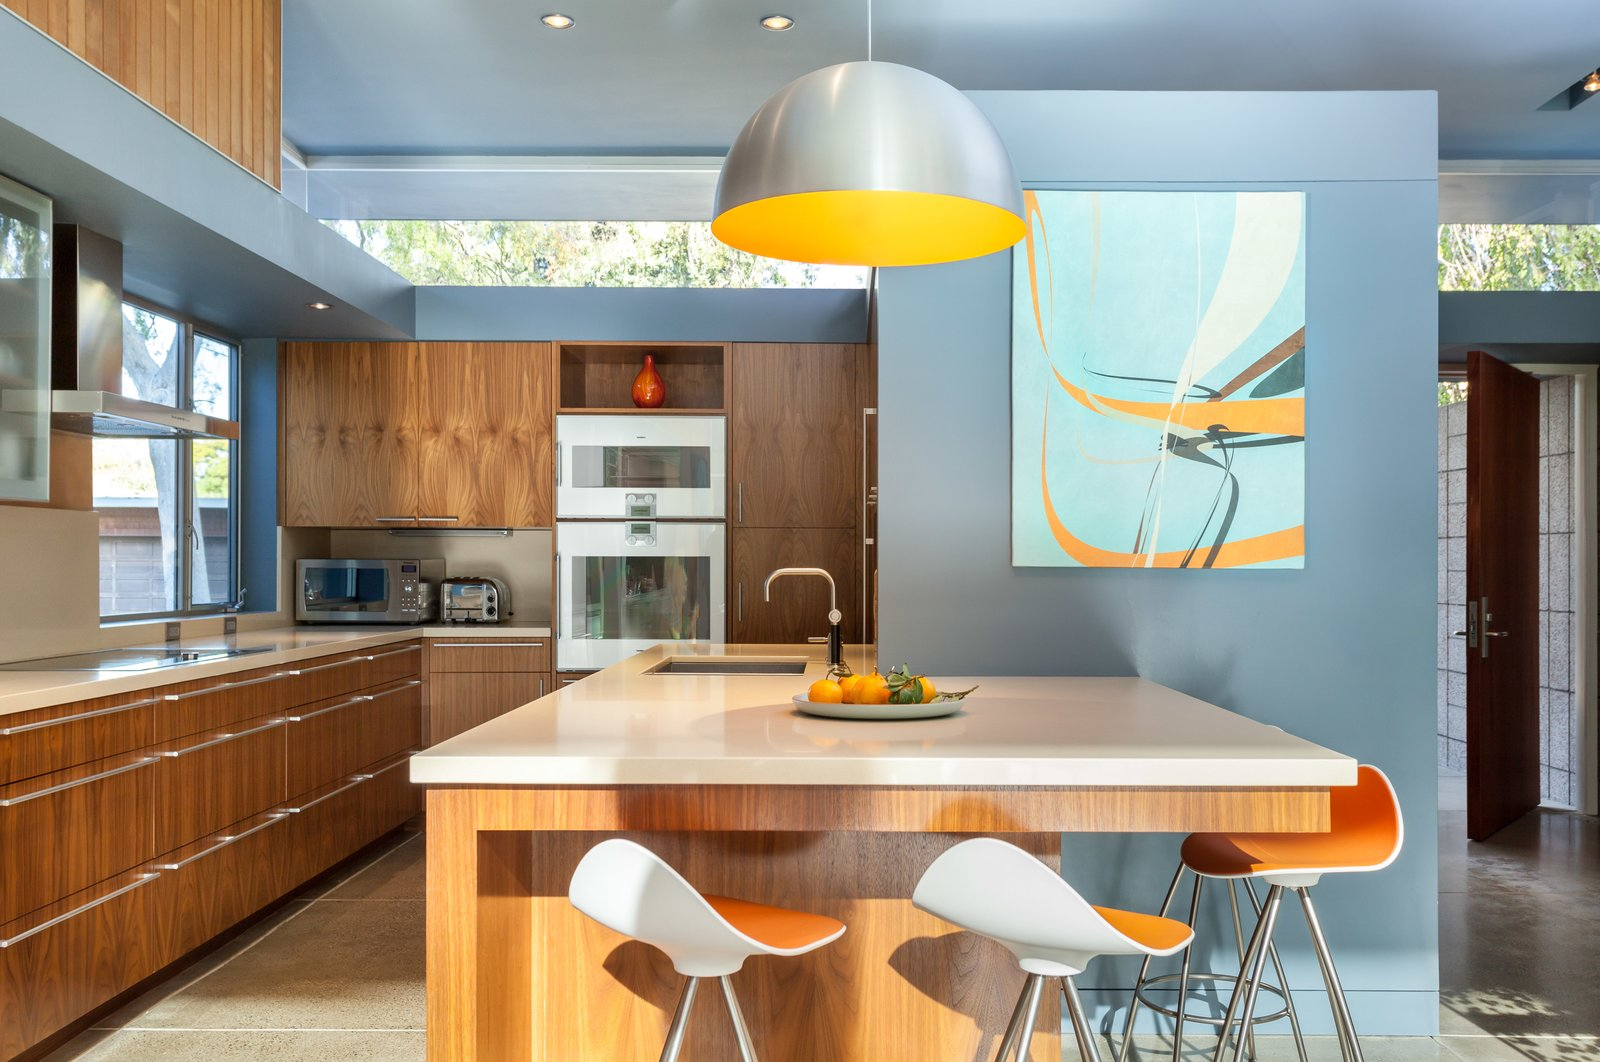 The kitchen is part of the new section in the center and features clerestory windows that let natural light floor into the space.  Photo 8 of 11 in A Year of Careful Study Leads to a Thoughtful Renovation of a 1949 Eichler